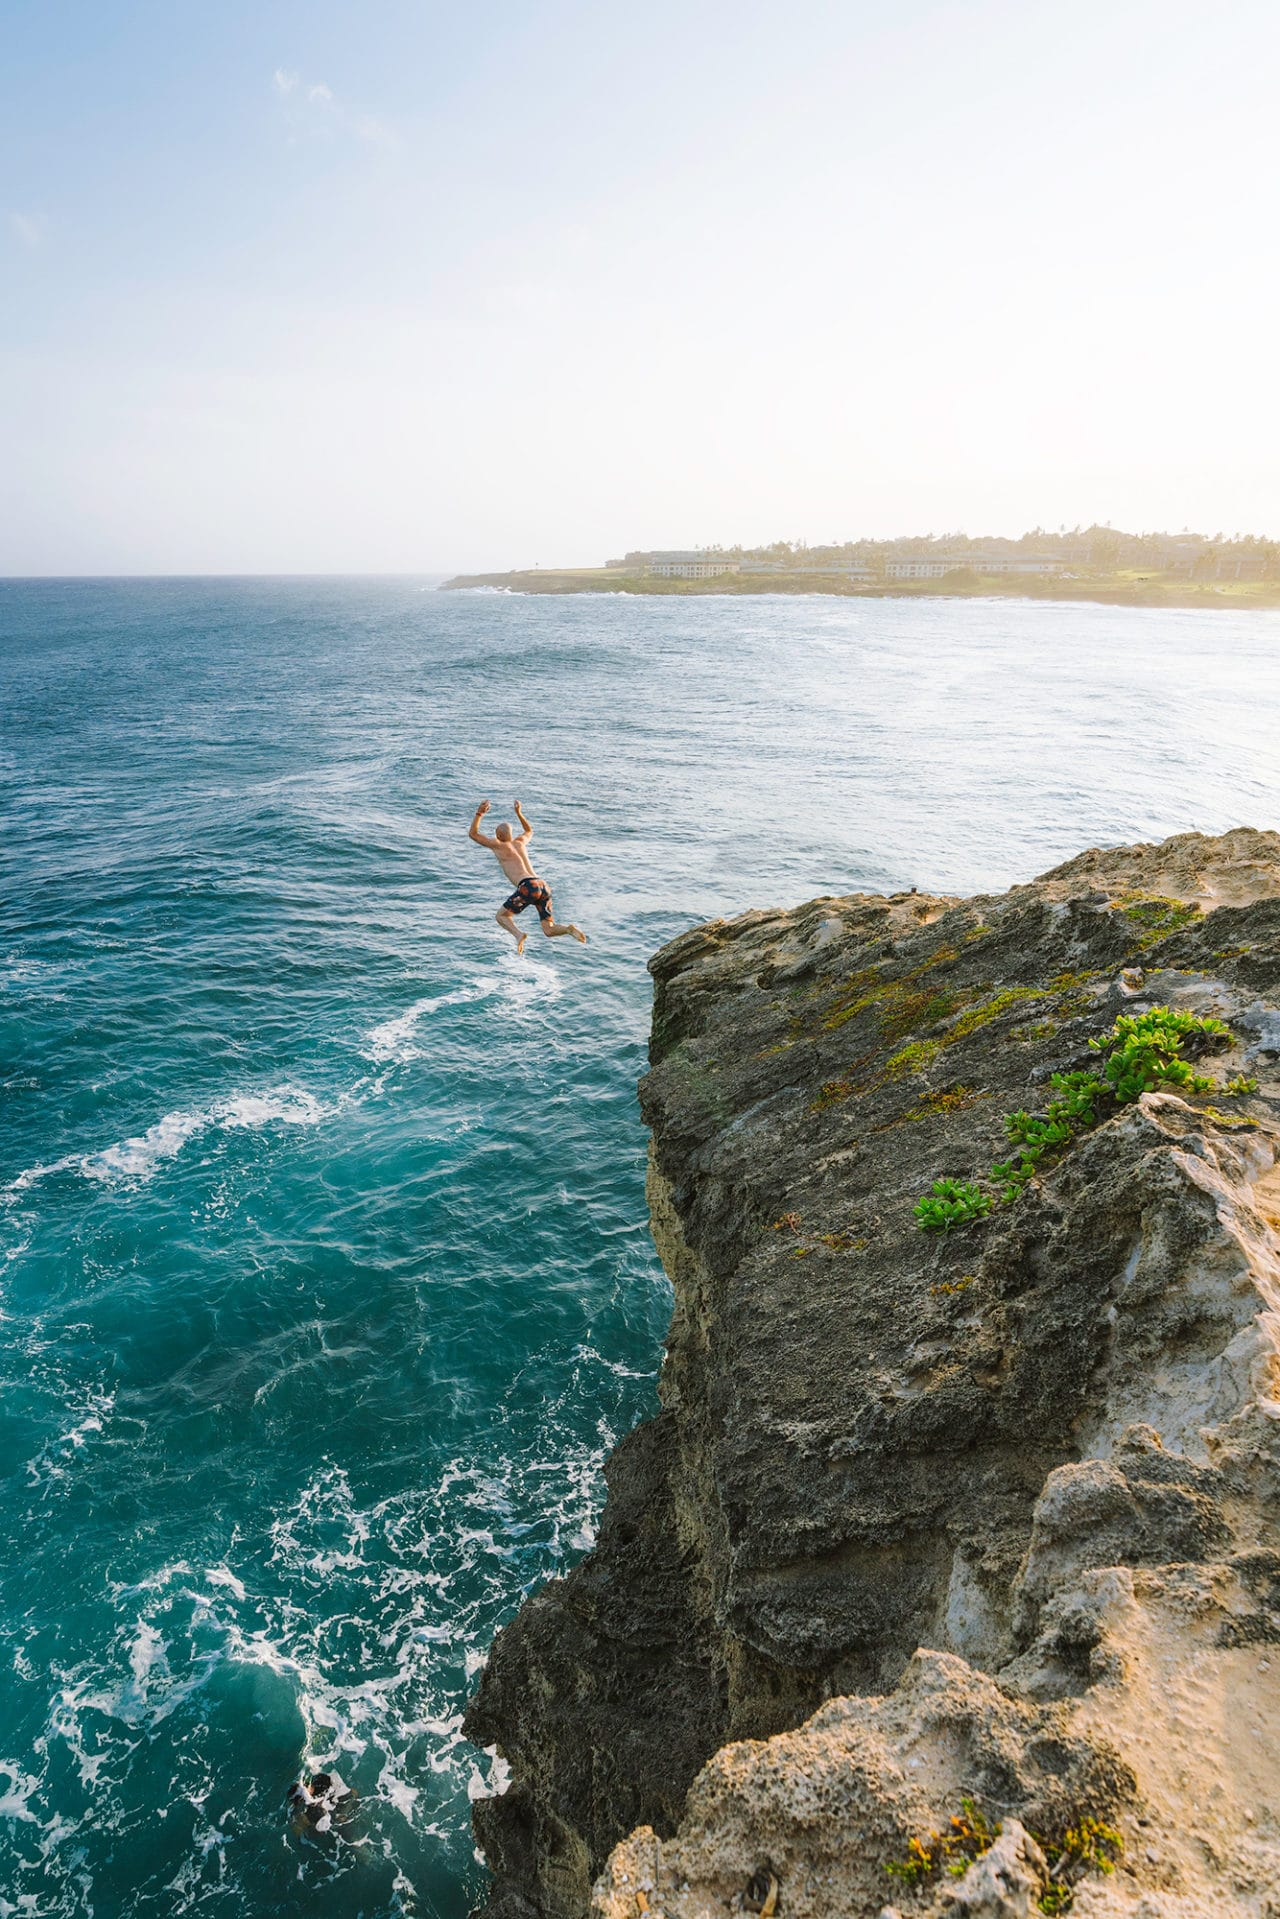 Jumping from a Cliff in Hawaii